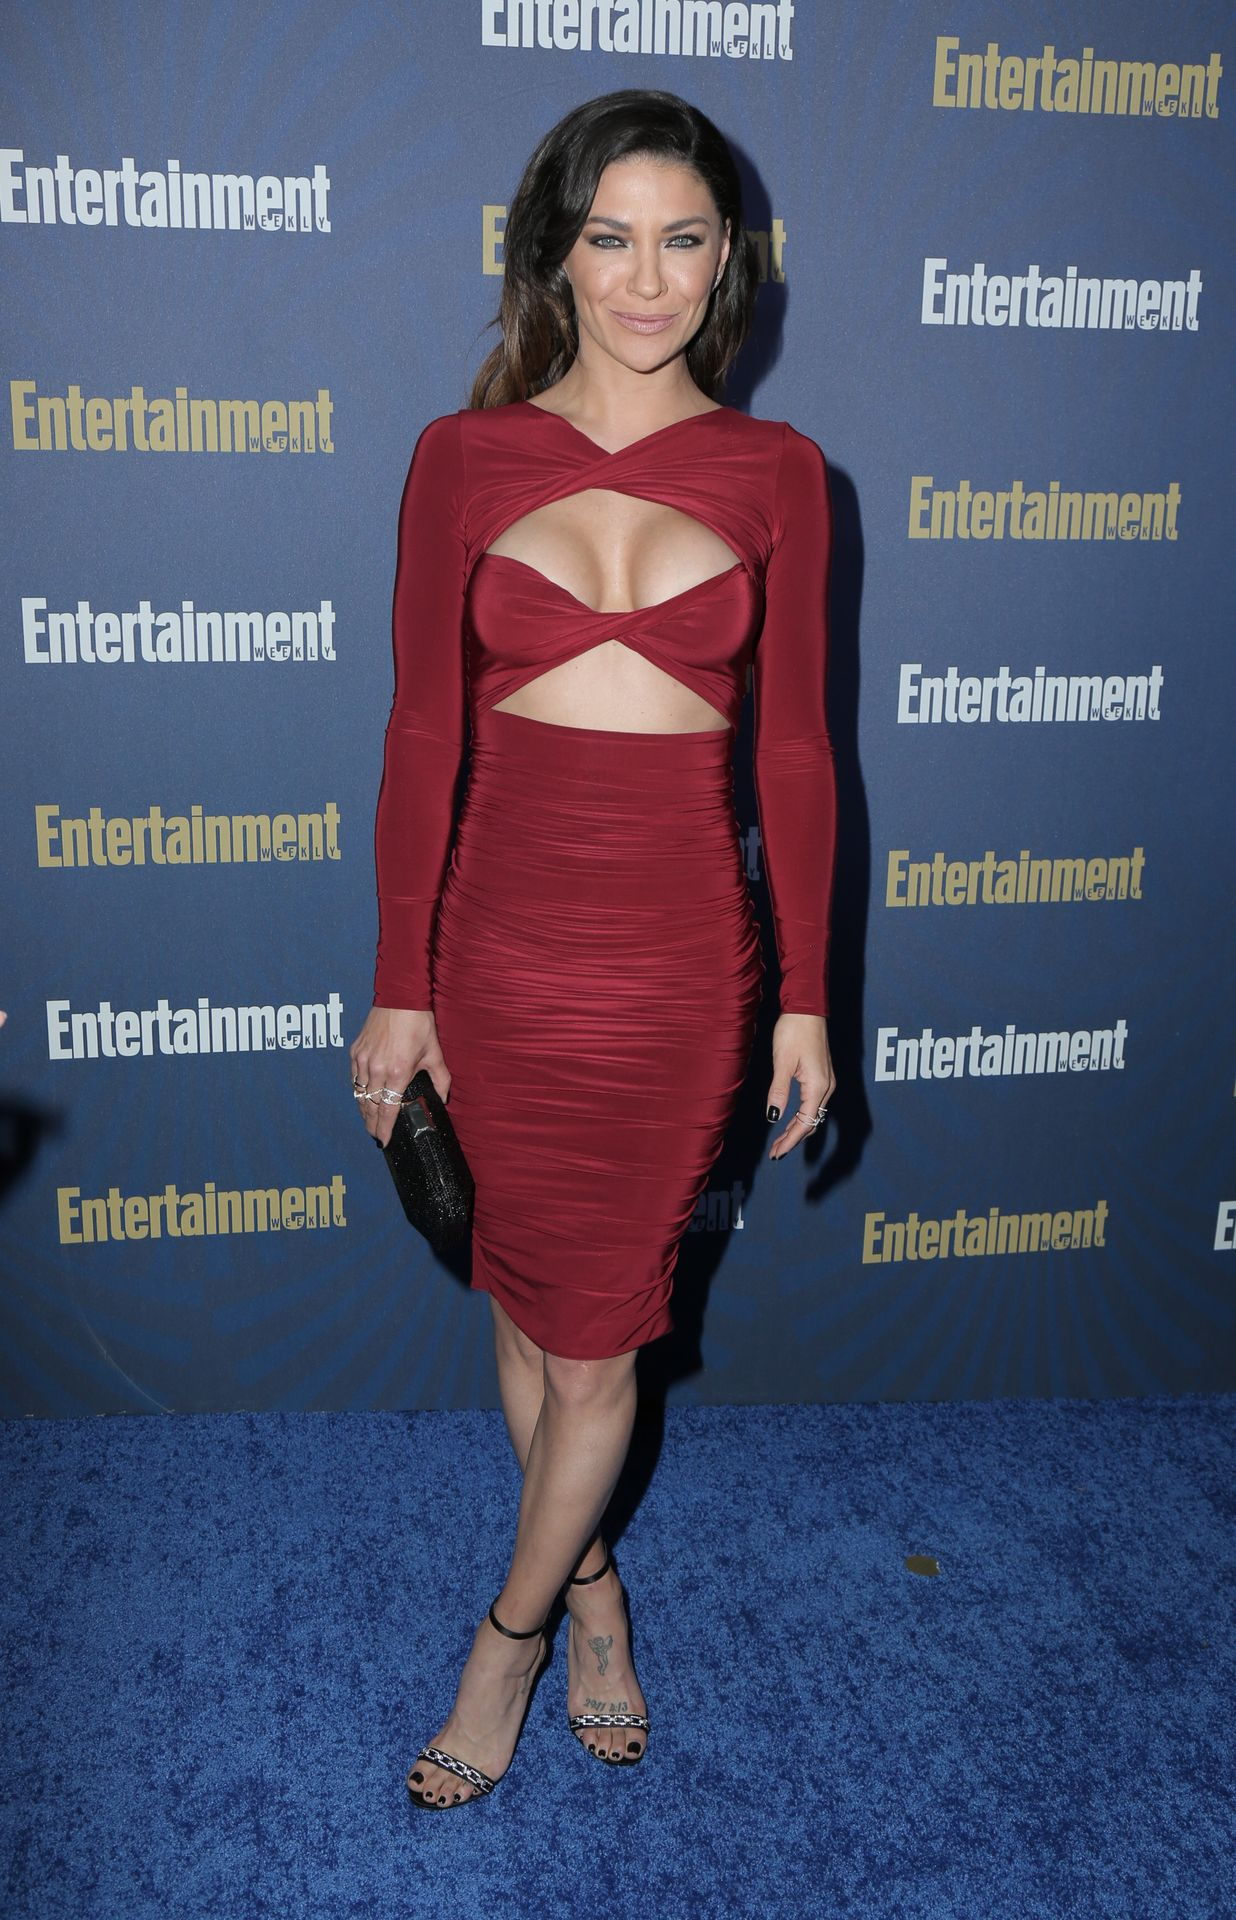 Jessica Szohr Shows Her Cleavage At The Entertainment Weekly Pre Sag Awards Celebration 0010